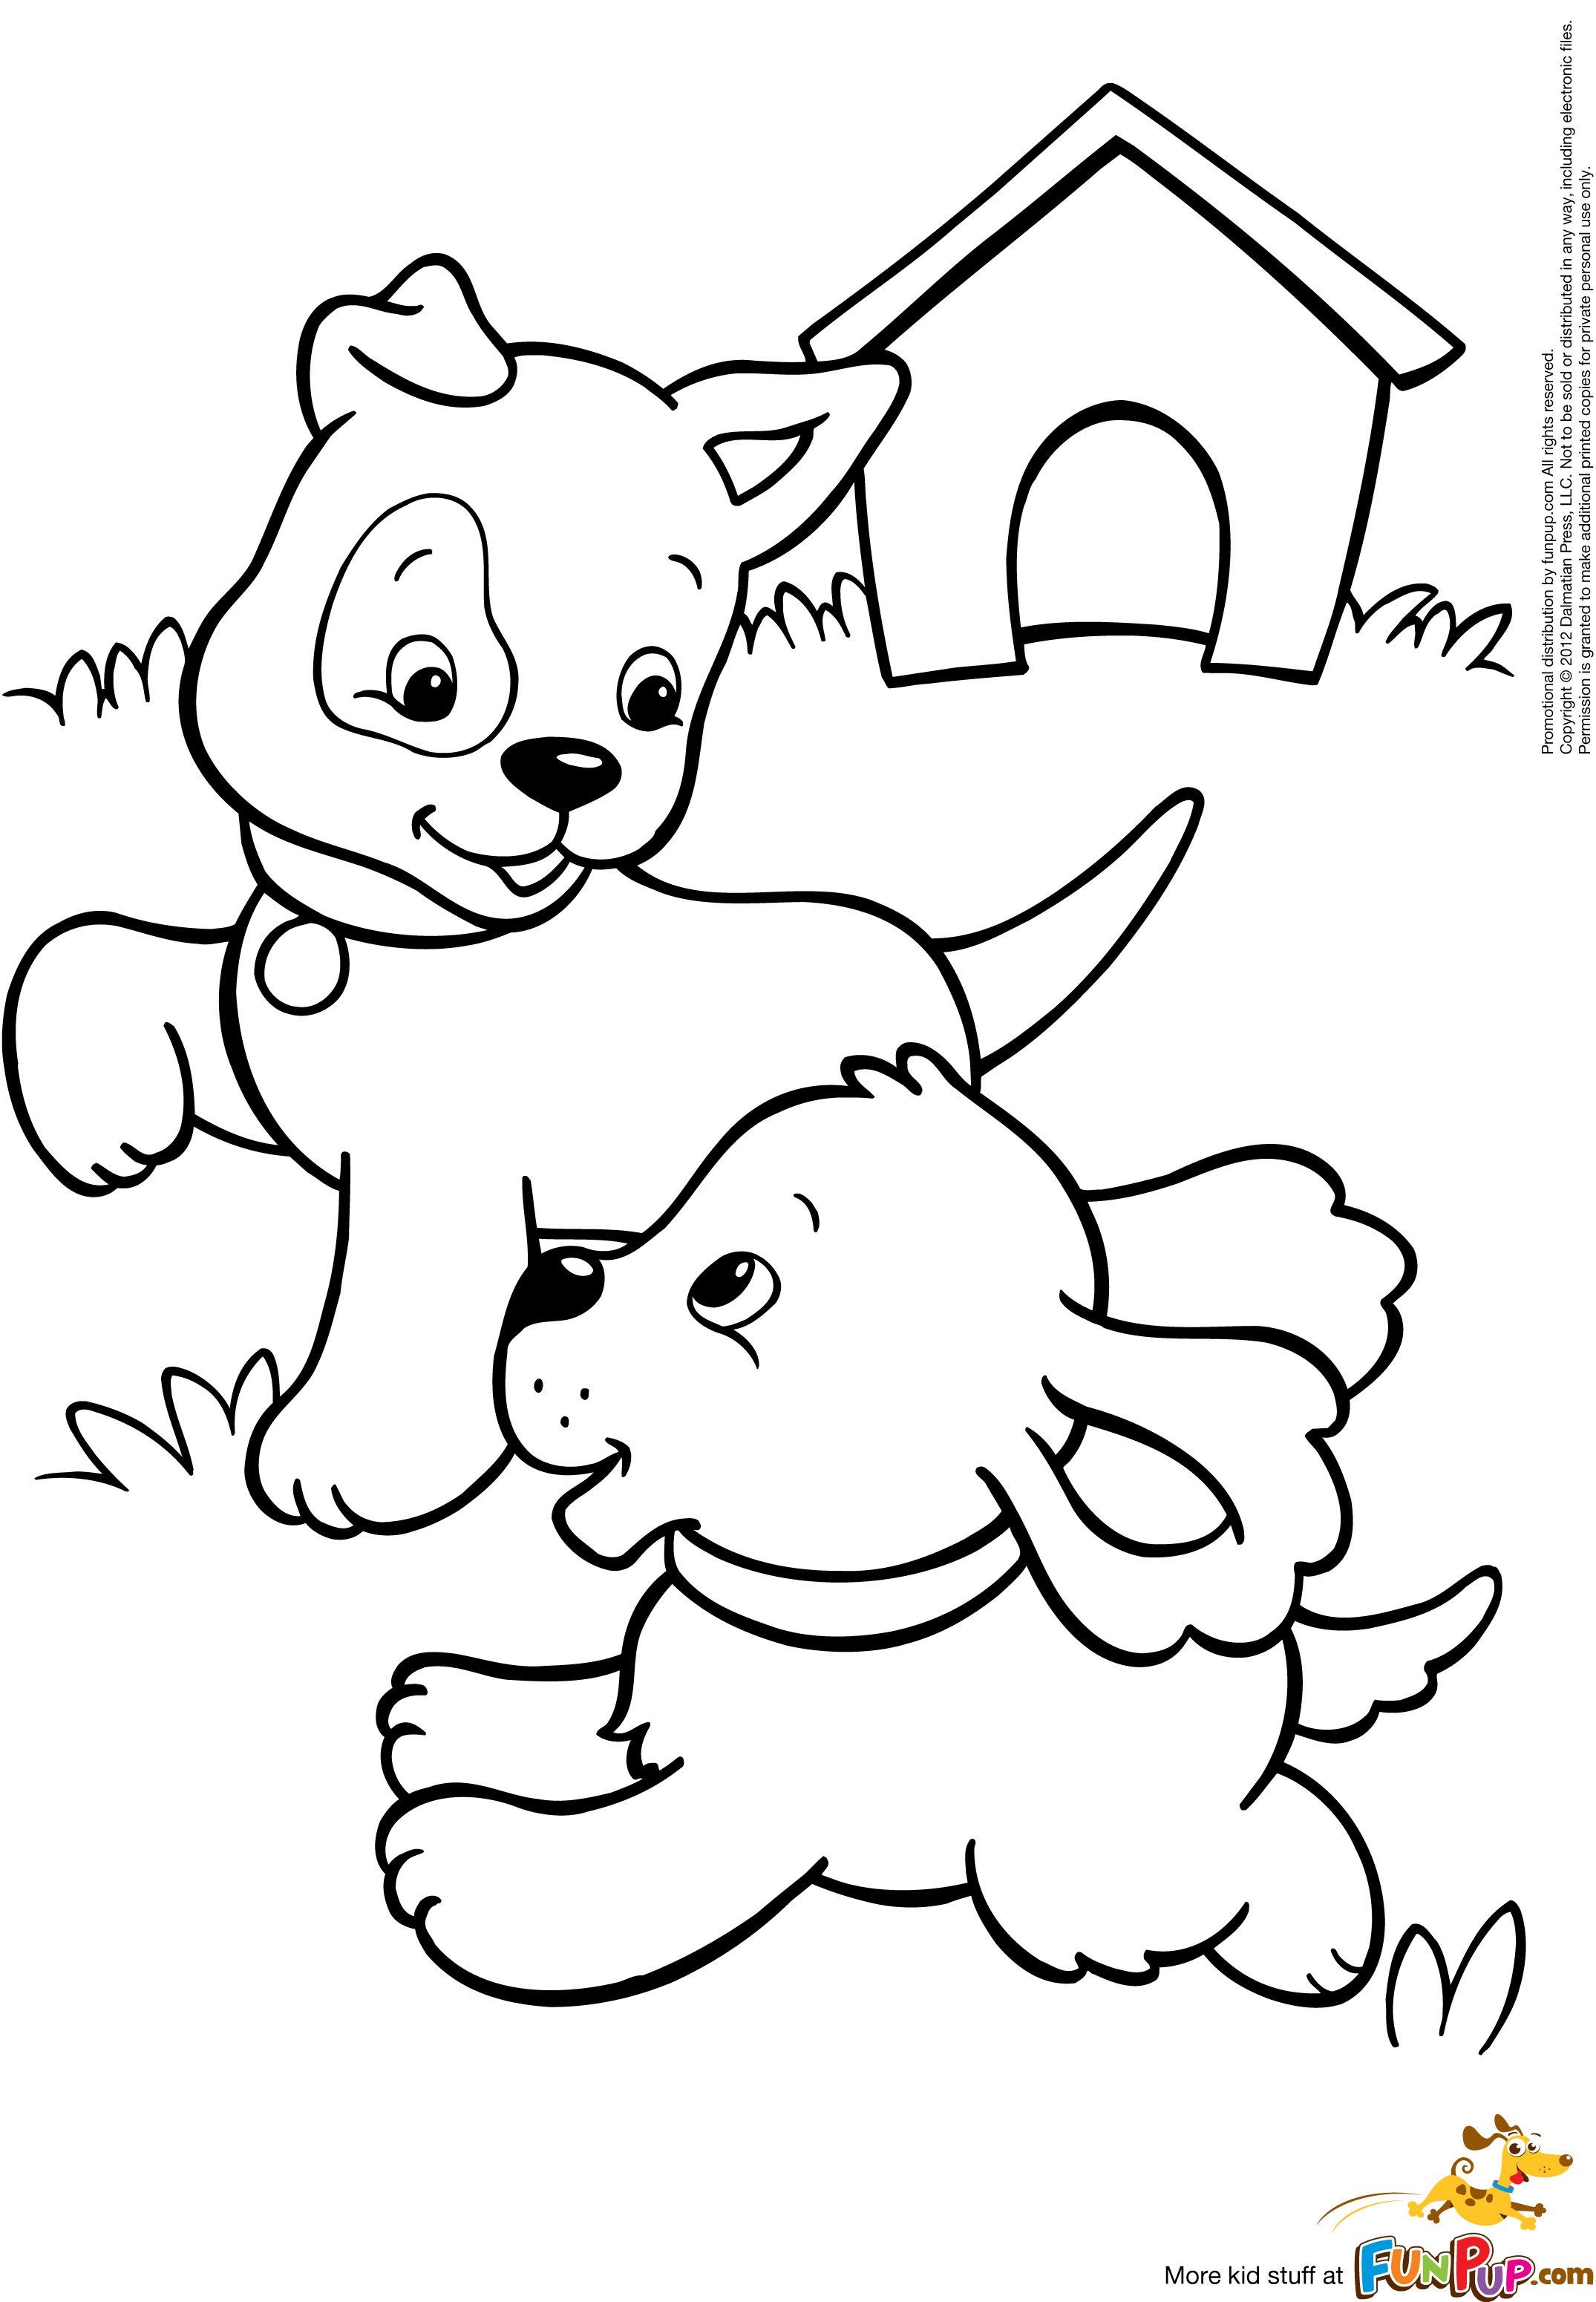 Realistic puppy coloring pages download and print for free for Cute puppies coloring pages